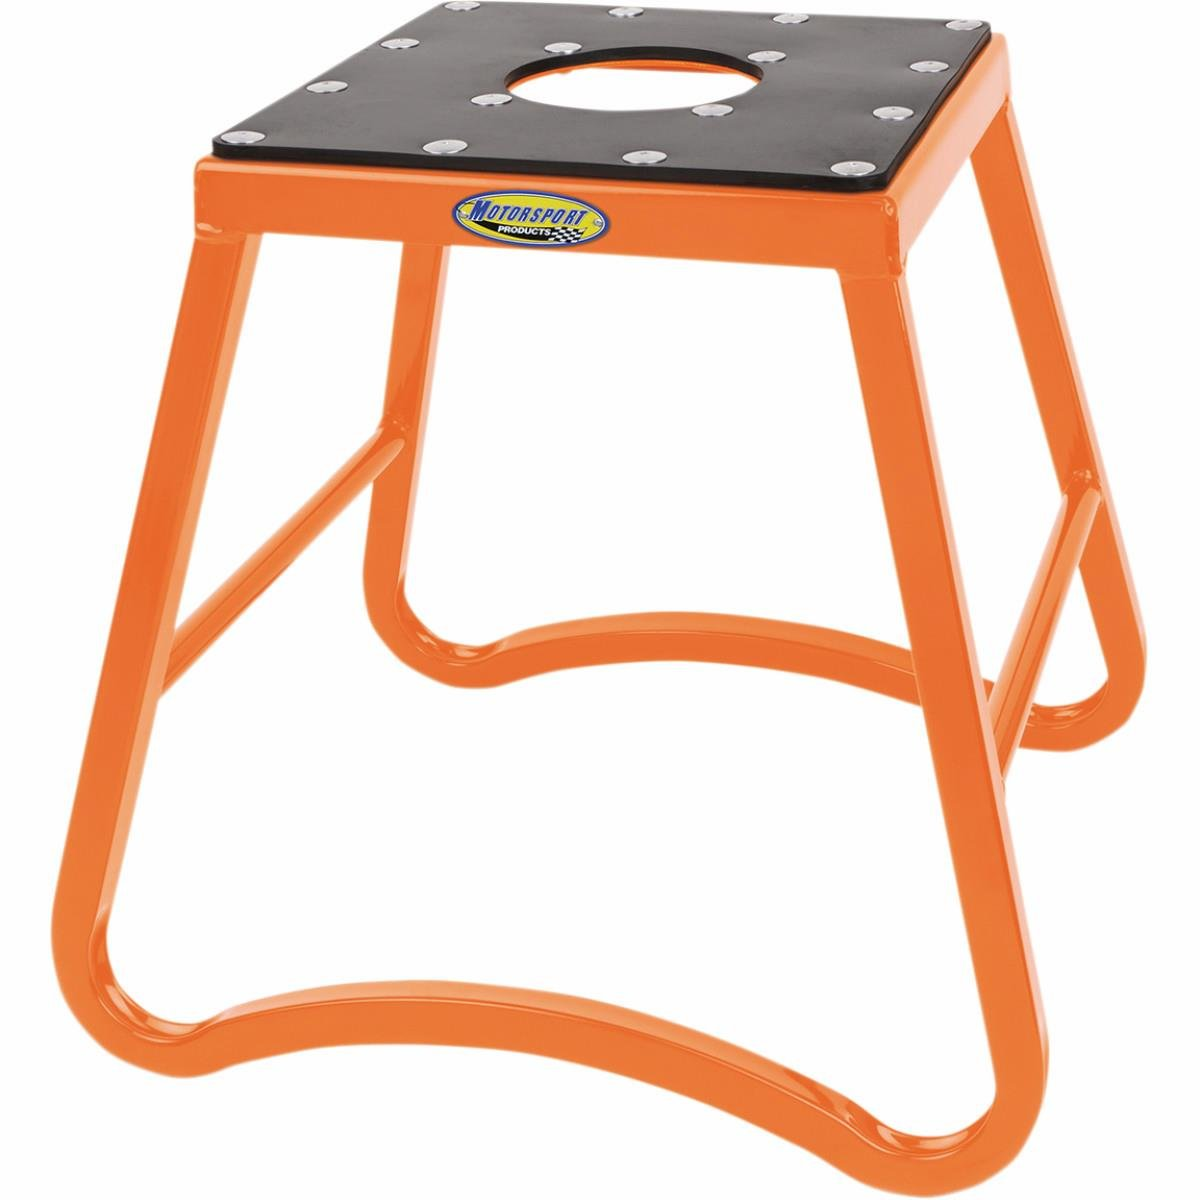 Motorsport Products SX1 Mini Stand Orange 964106